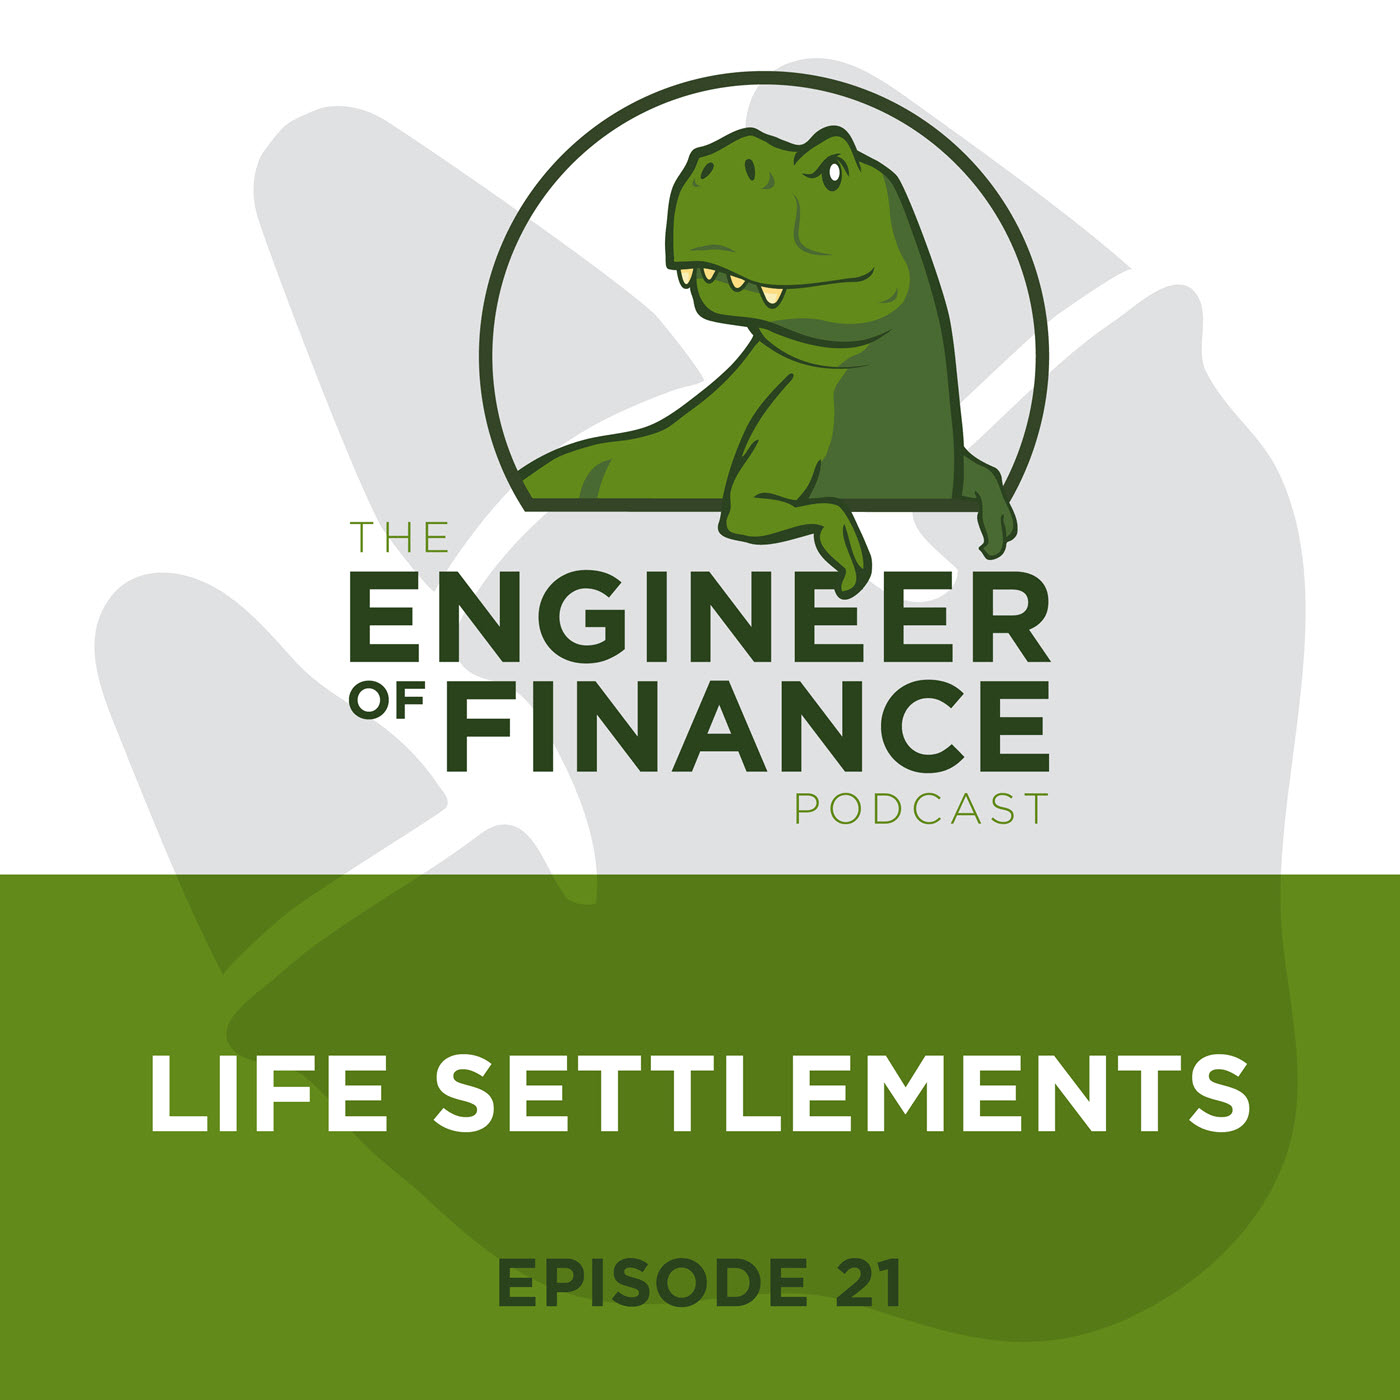 Life Settlements – Episode 21